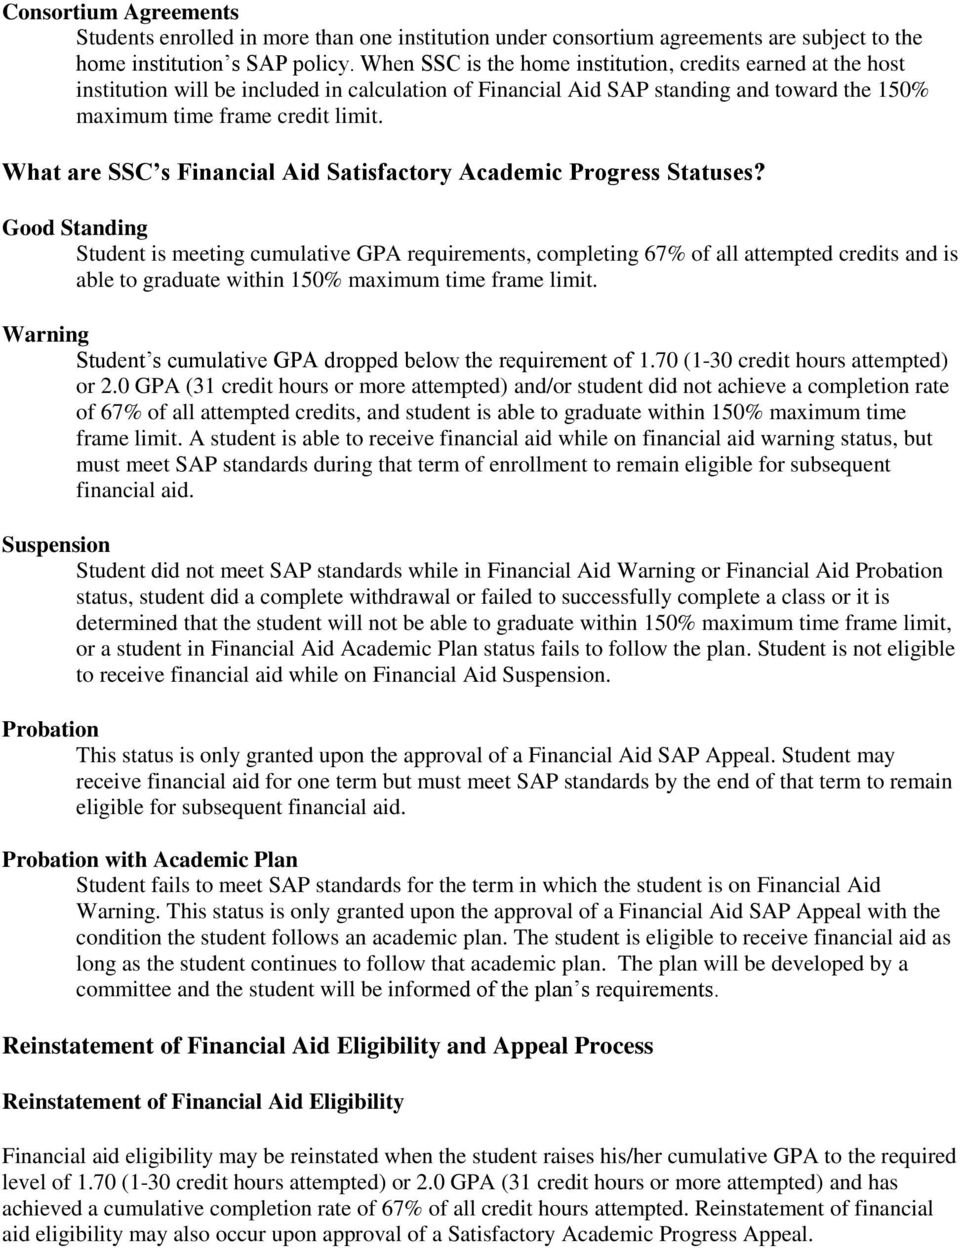 Financial Aid Sap Appeal Letter Sample from docplayer.net